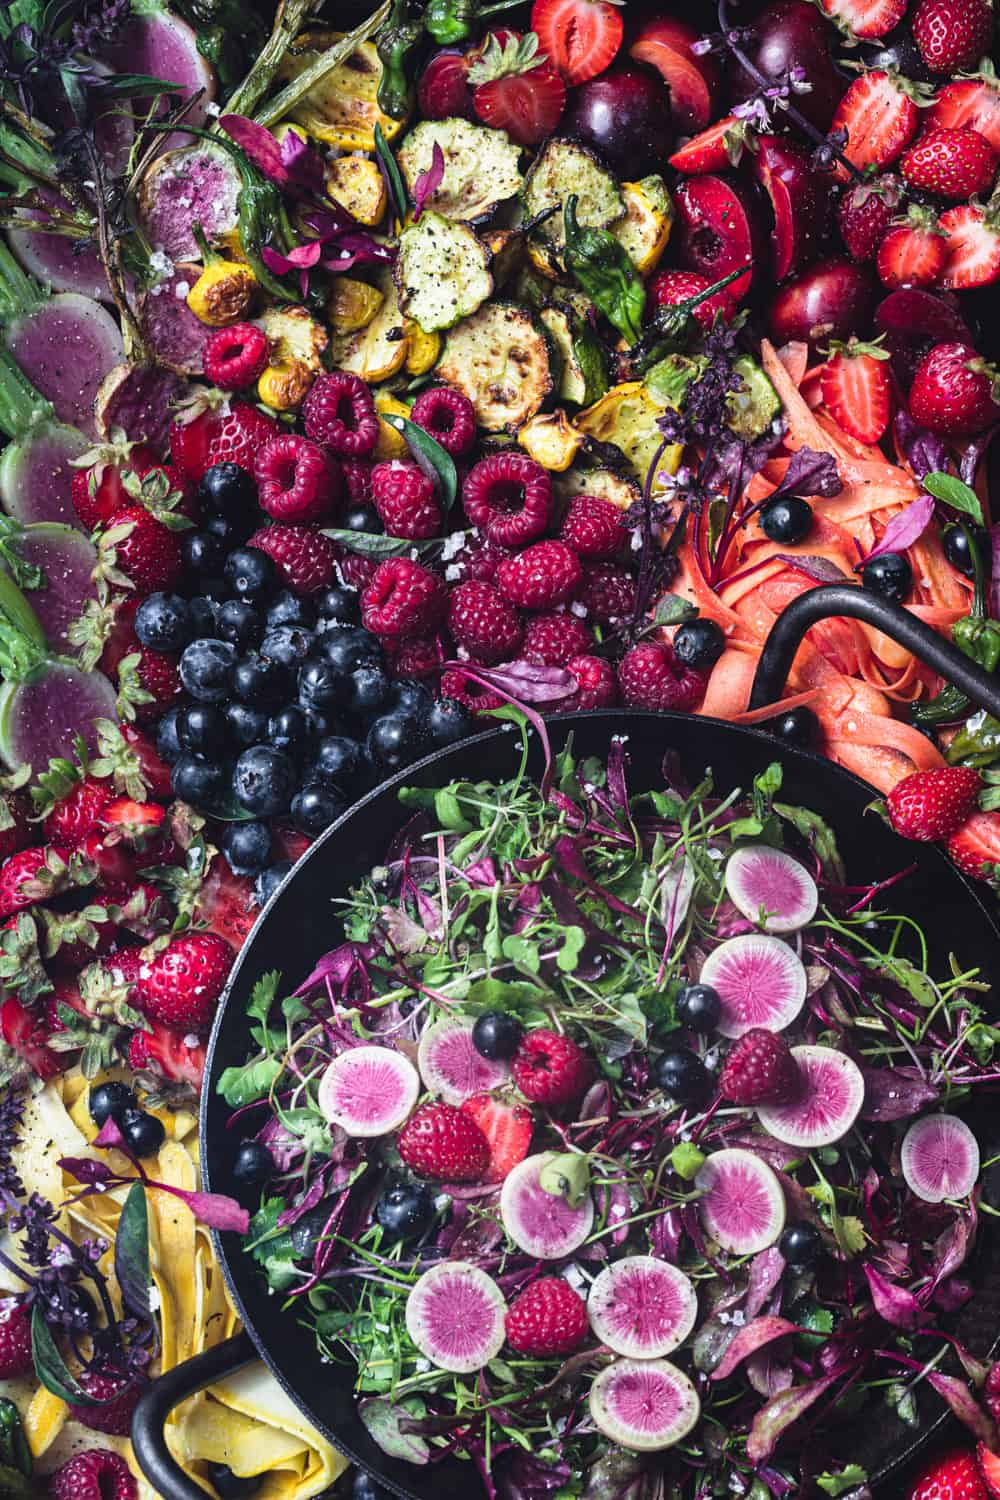 Summer fruit and veggie salad! There's berries, stone fruit, radishes, summer squash, greens and more arranged on a tray. Overhead shot.